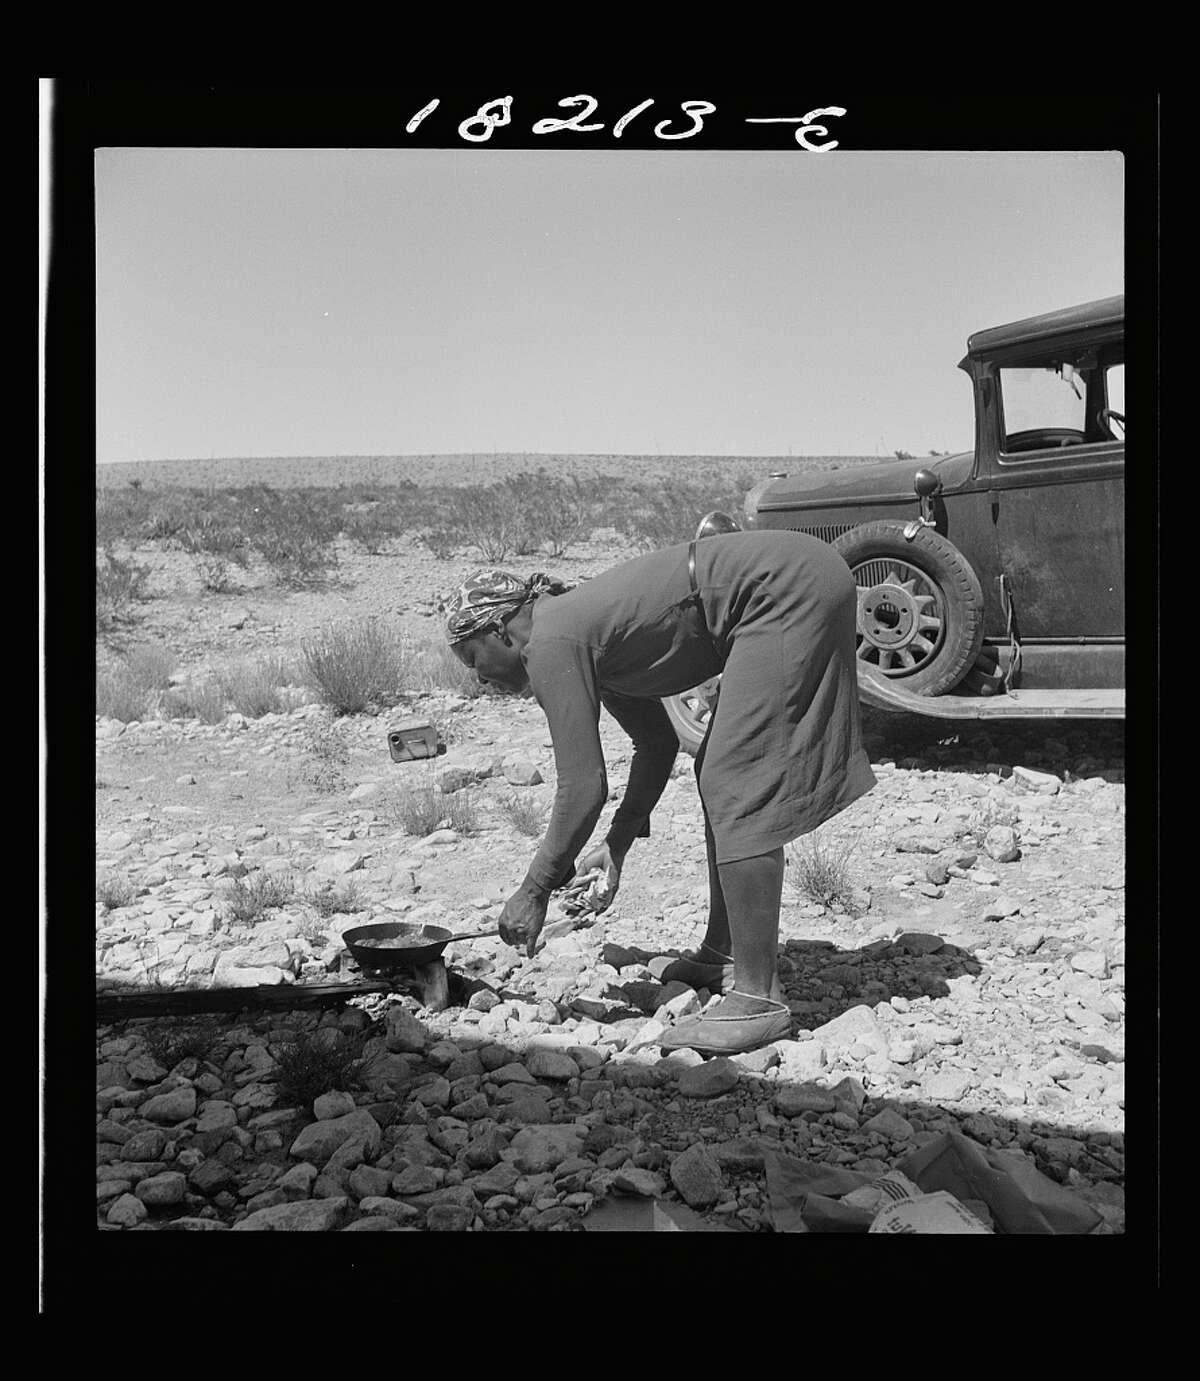 A young woman cooking breakfast on the outskirts of El Paso, Texas, said,